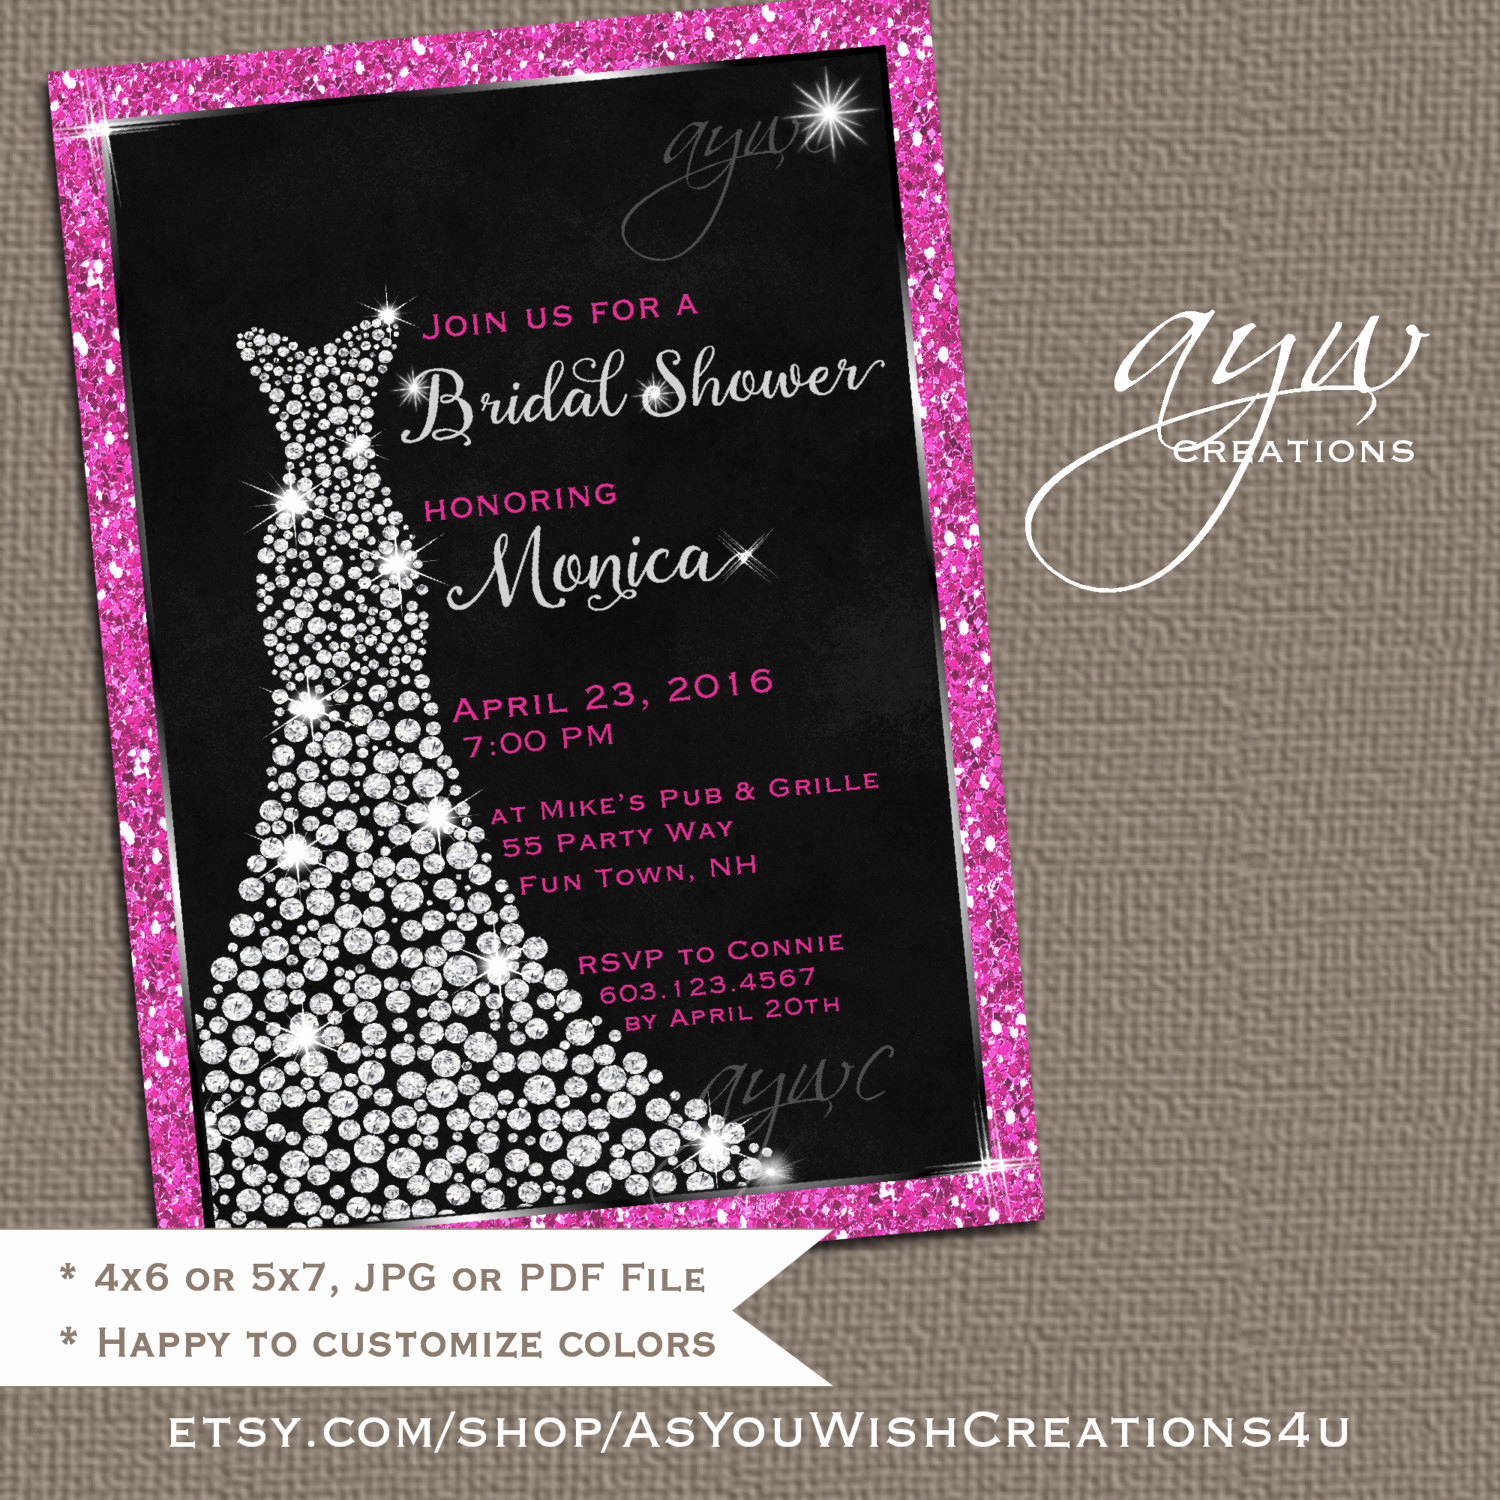 Free Bridal Shower Invitation Printables Beautiful Wedding Dress Bridal Shower Invitation Printable Bridal Shower